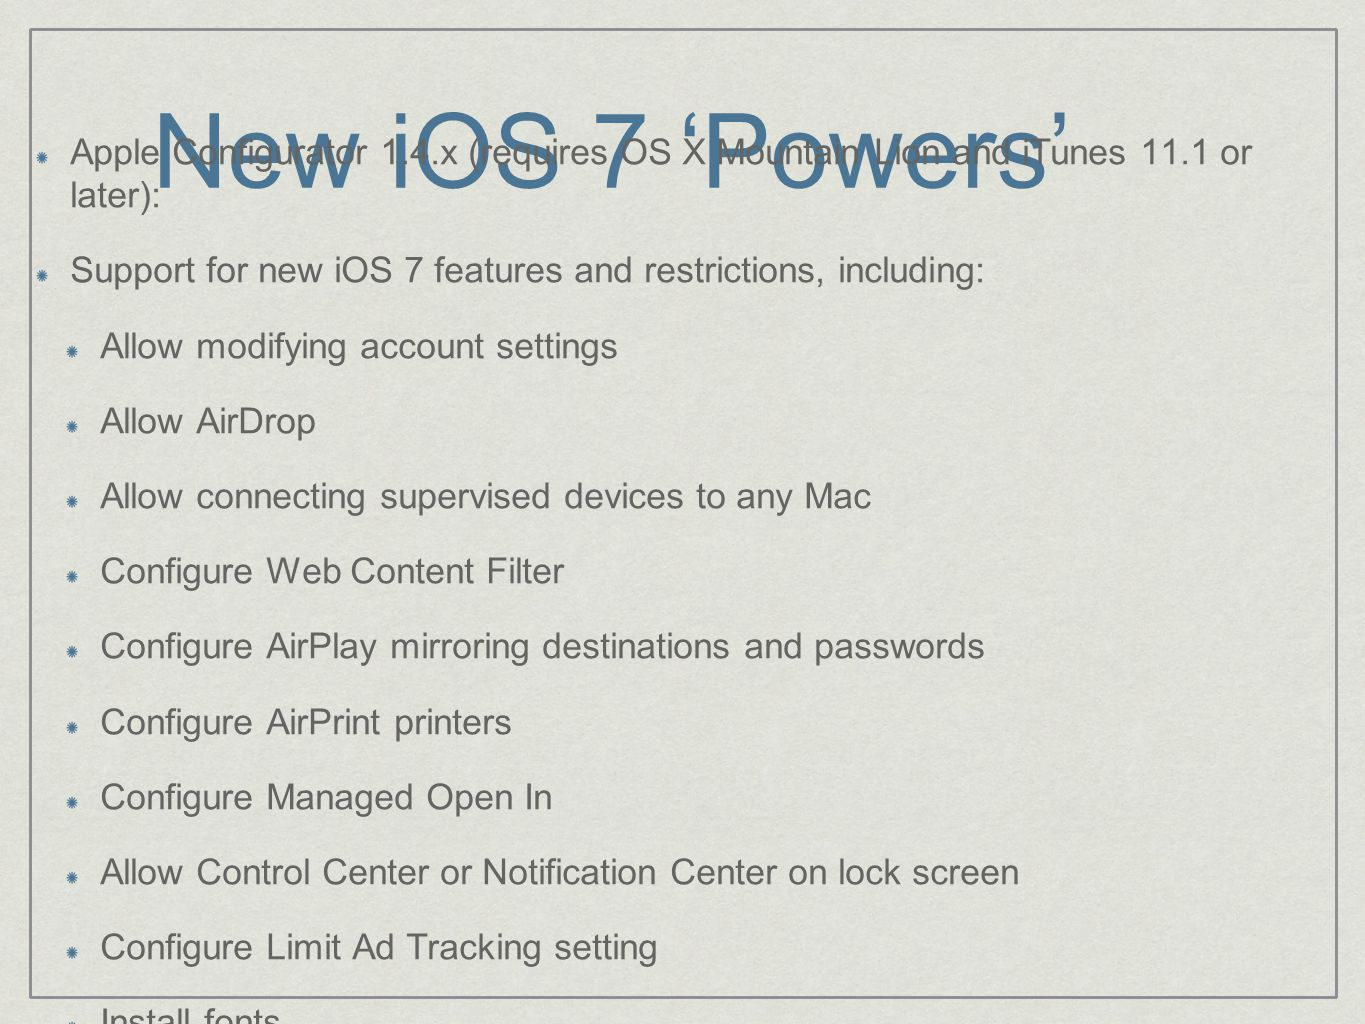 New iOS 7 'Powers' Apple Configurator 1.4.x (requires OS X Mountain Lion and iTunes 11.1 or later): Support for new iOS 7 features and restrictions, including: Allow modifying account settings Allow AirDrop Allow connecting supervised devices to any Mac Configure Web Content Filter Configure AirPlay mirroring destinations and passwords Configure AirPrint printers Configure Managed Open In Allow Control Center or Notification Center on lock screen Configure Limit Ad Tracking setting Install fonts